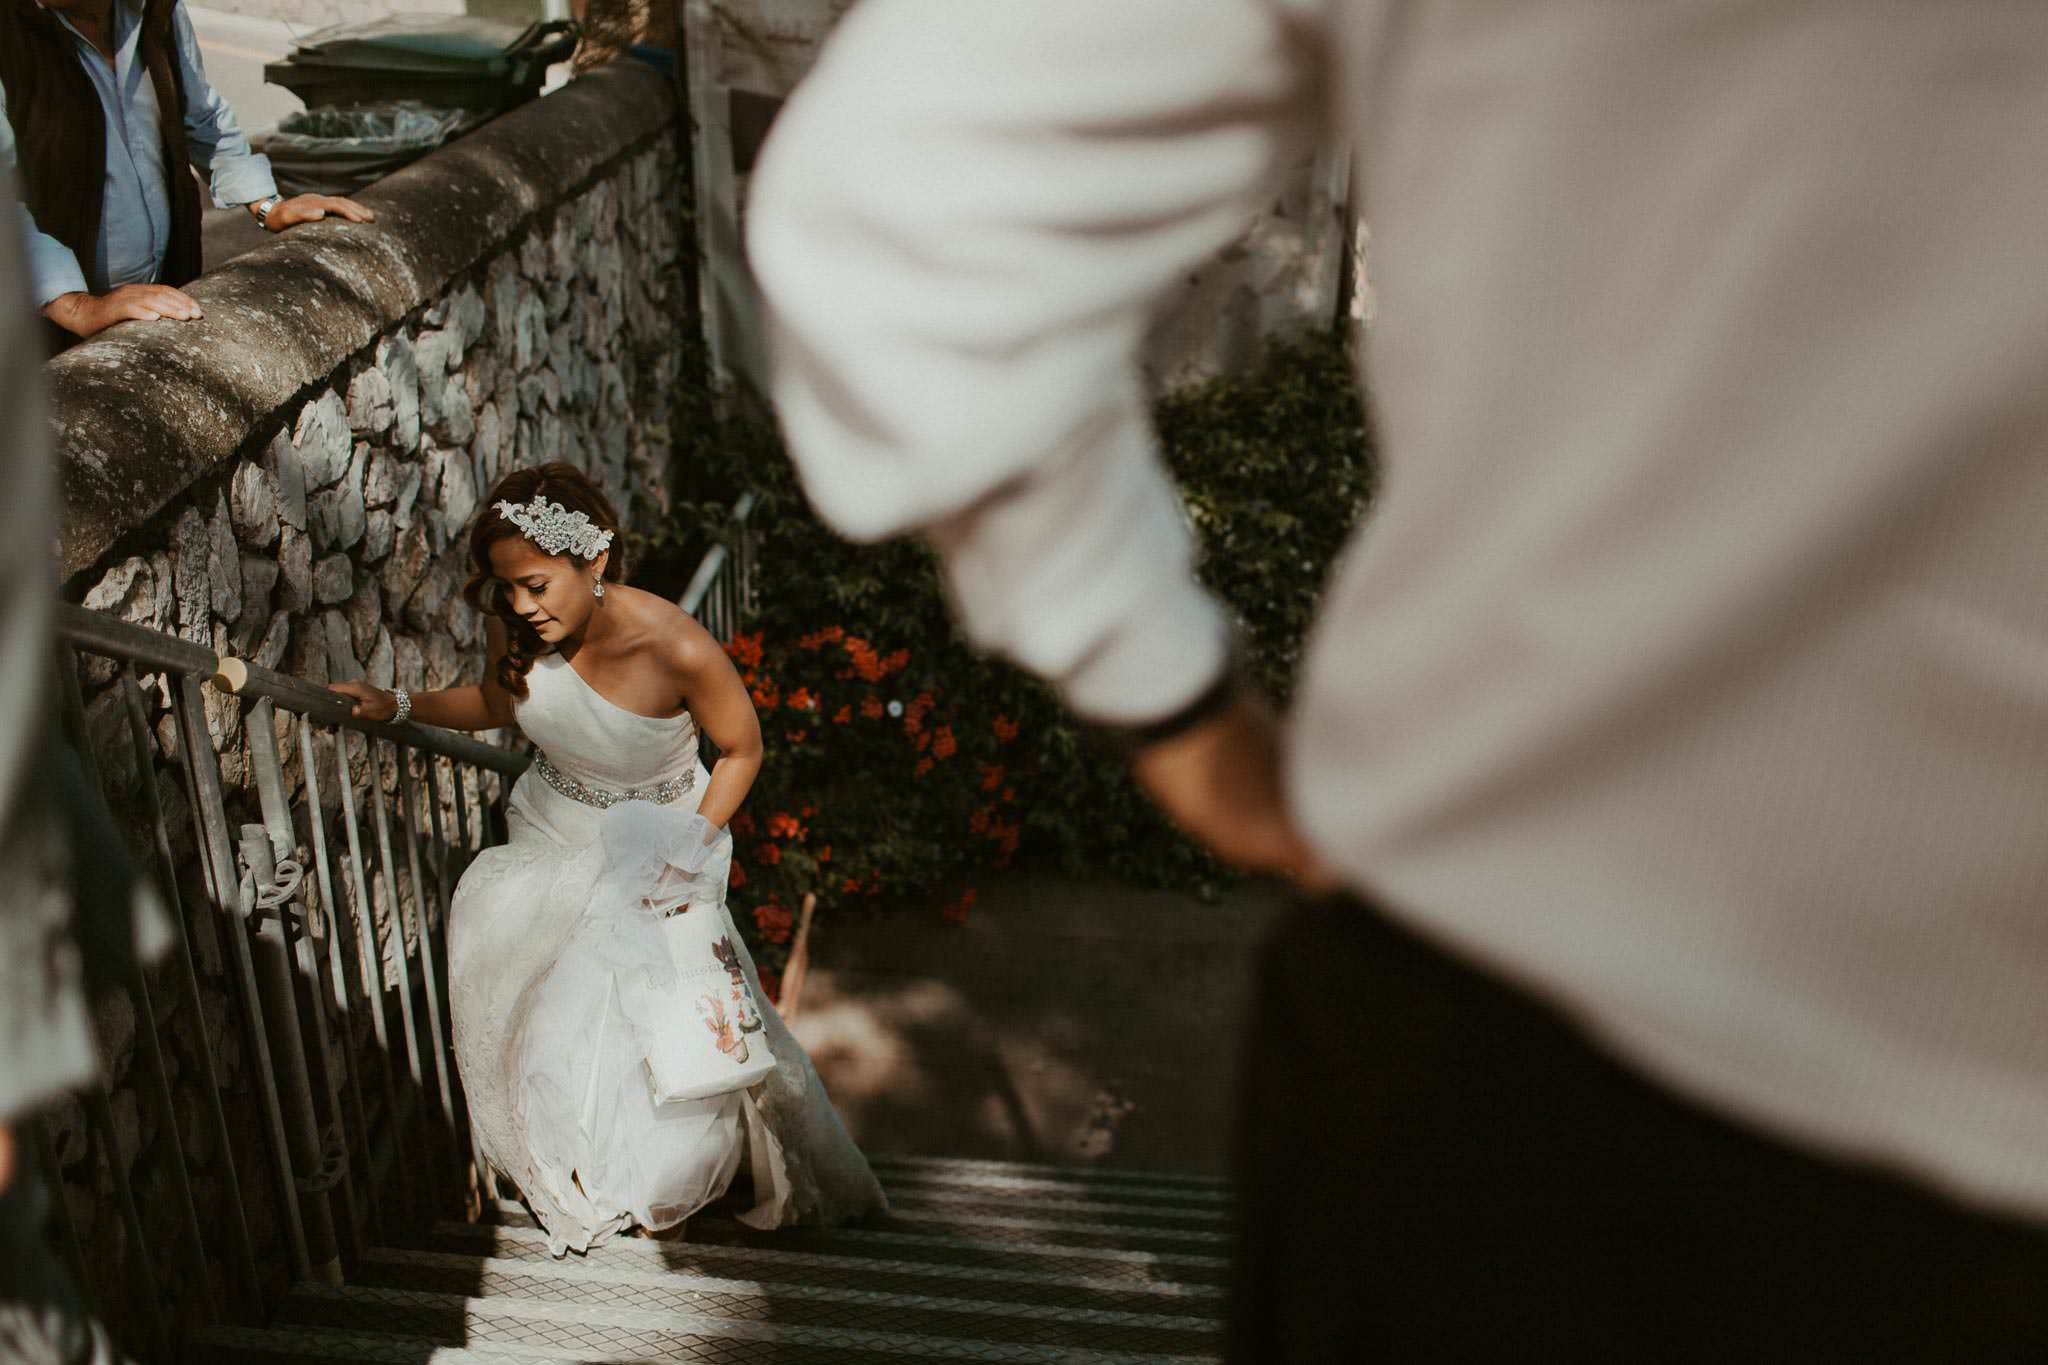 positano-wedding-photographer-062